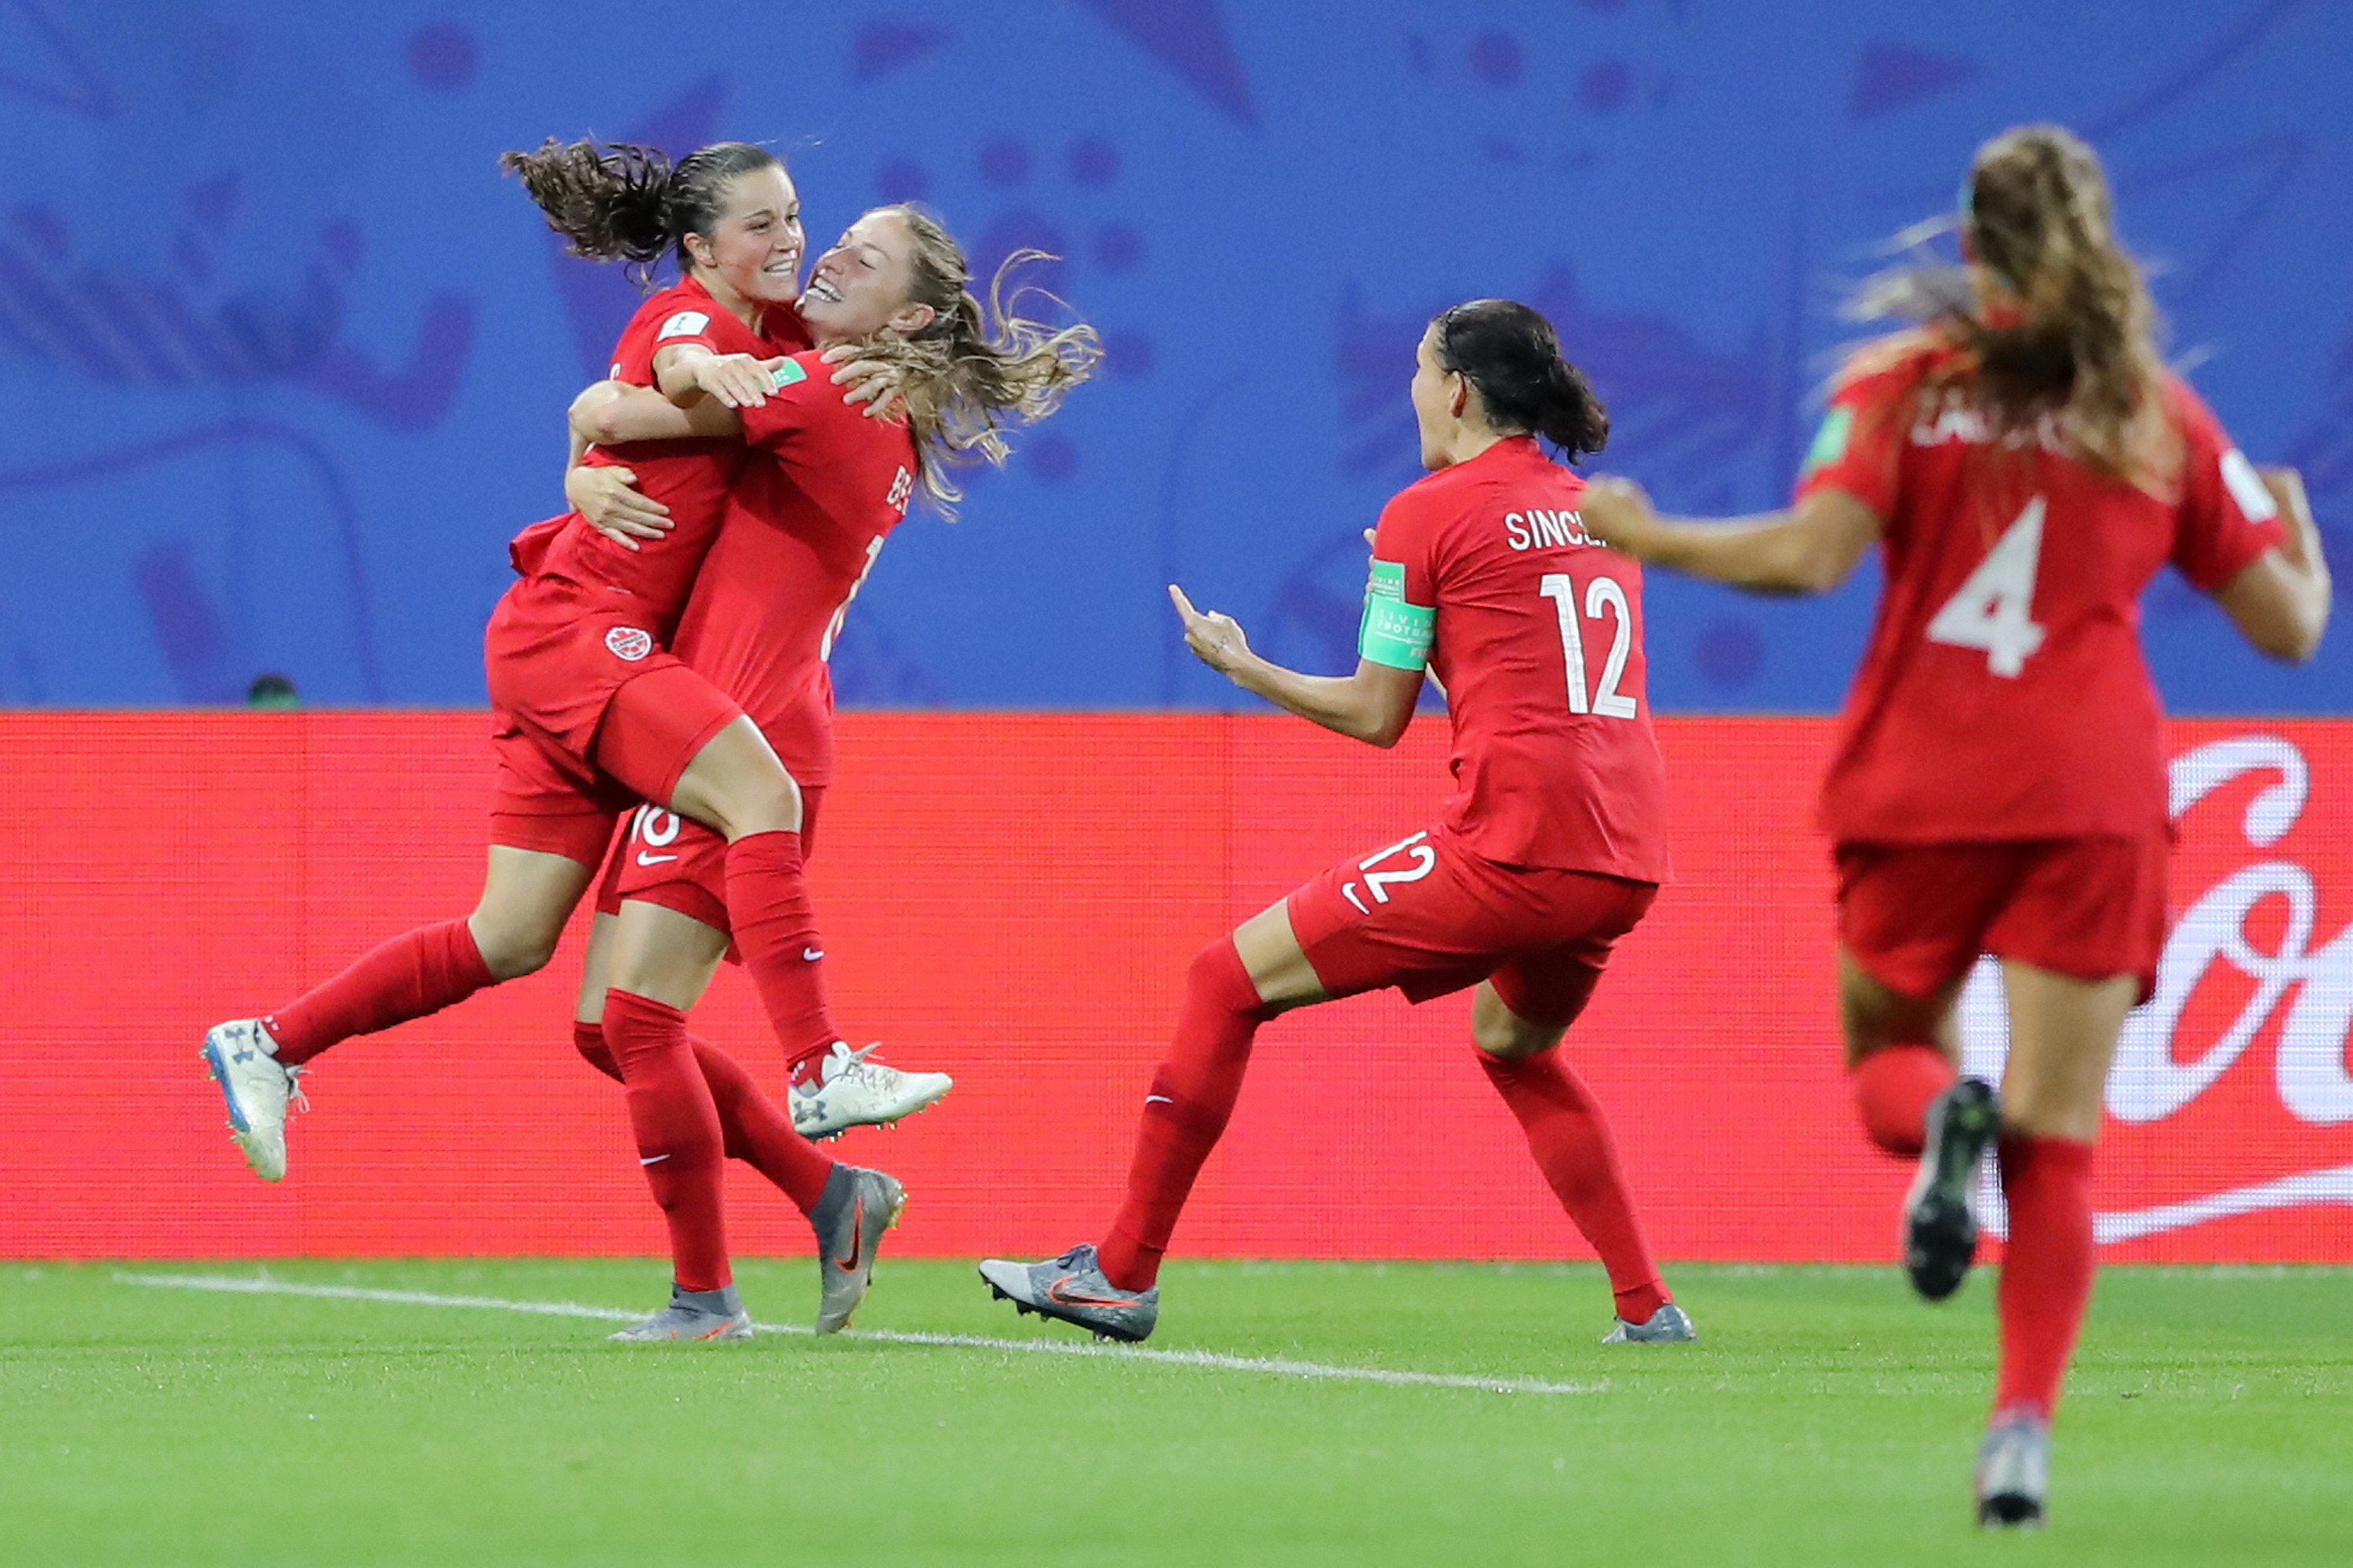 Jessie Fleming scores - Canada v New Zealand: Group E - 2019 FIFA Women's World Cup France